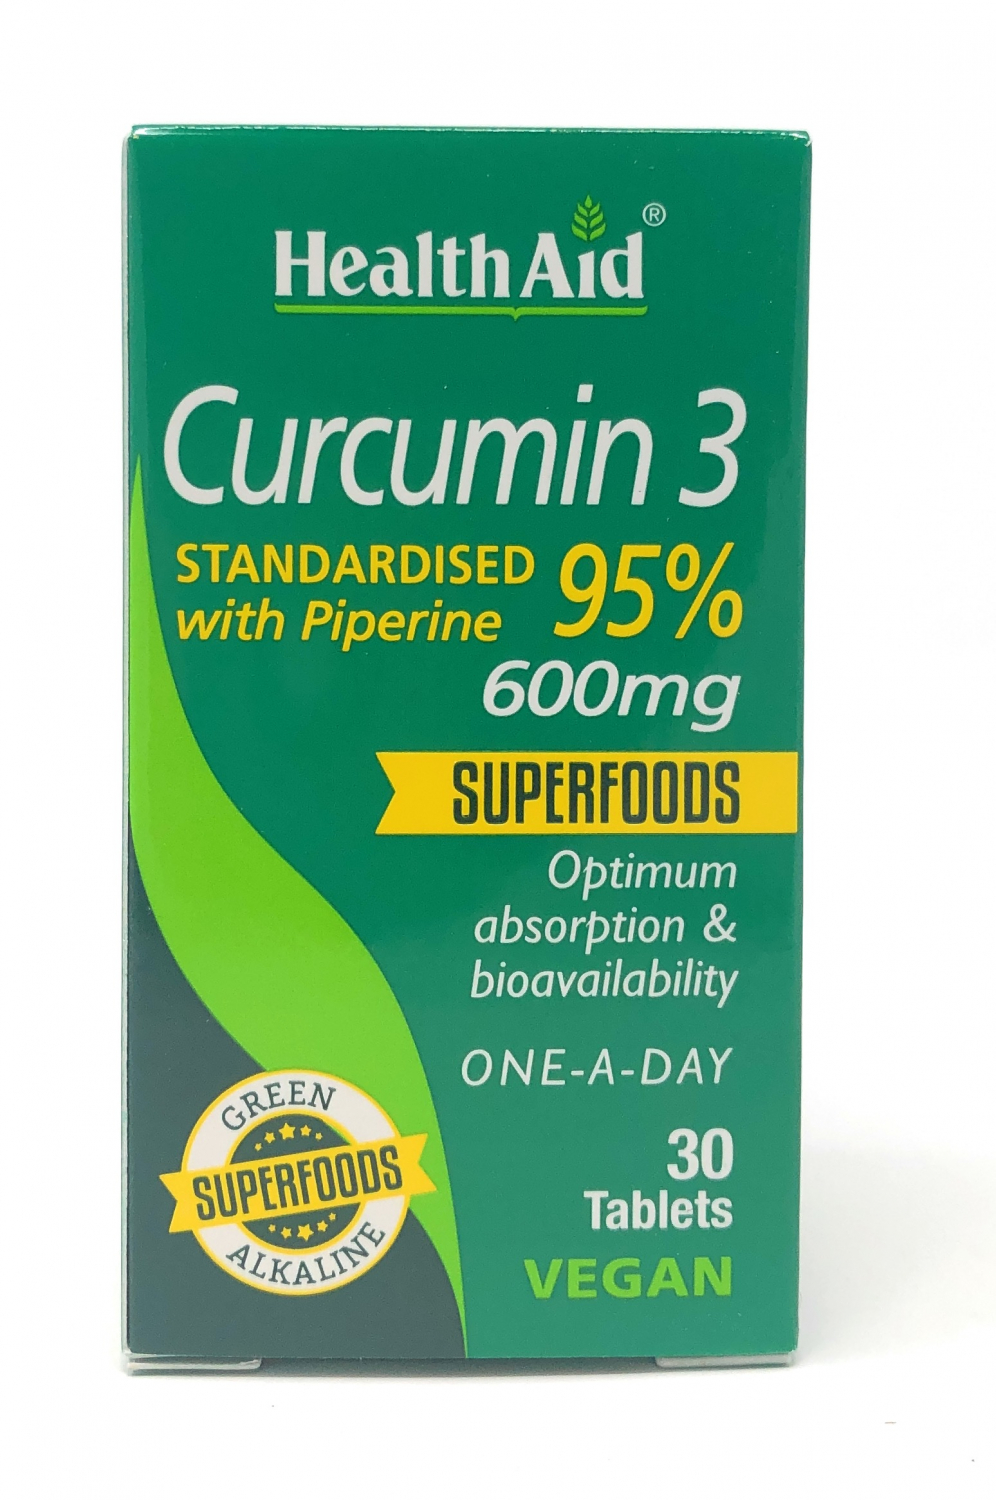 HealthAid Curcumin 3 600mg (Standardised 95% with Piperine) 30 Tabletten (vegan)